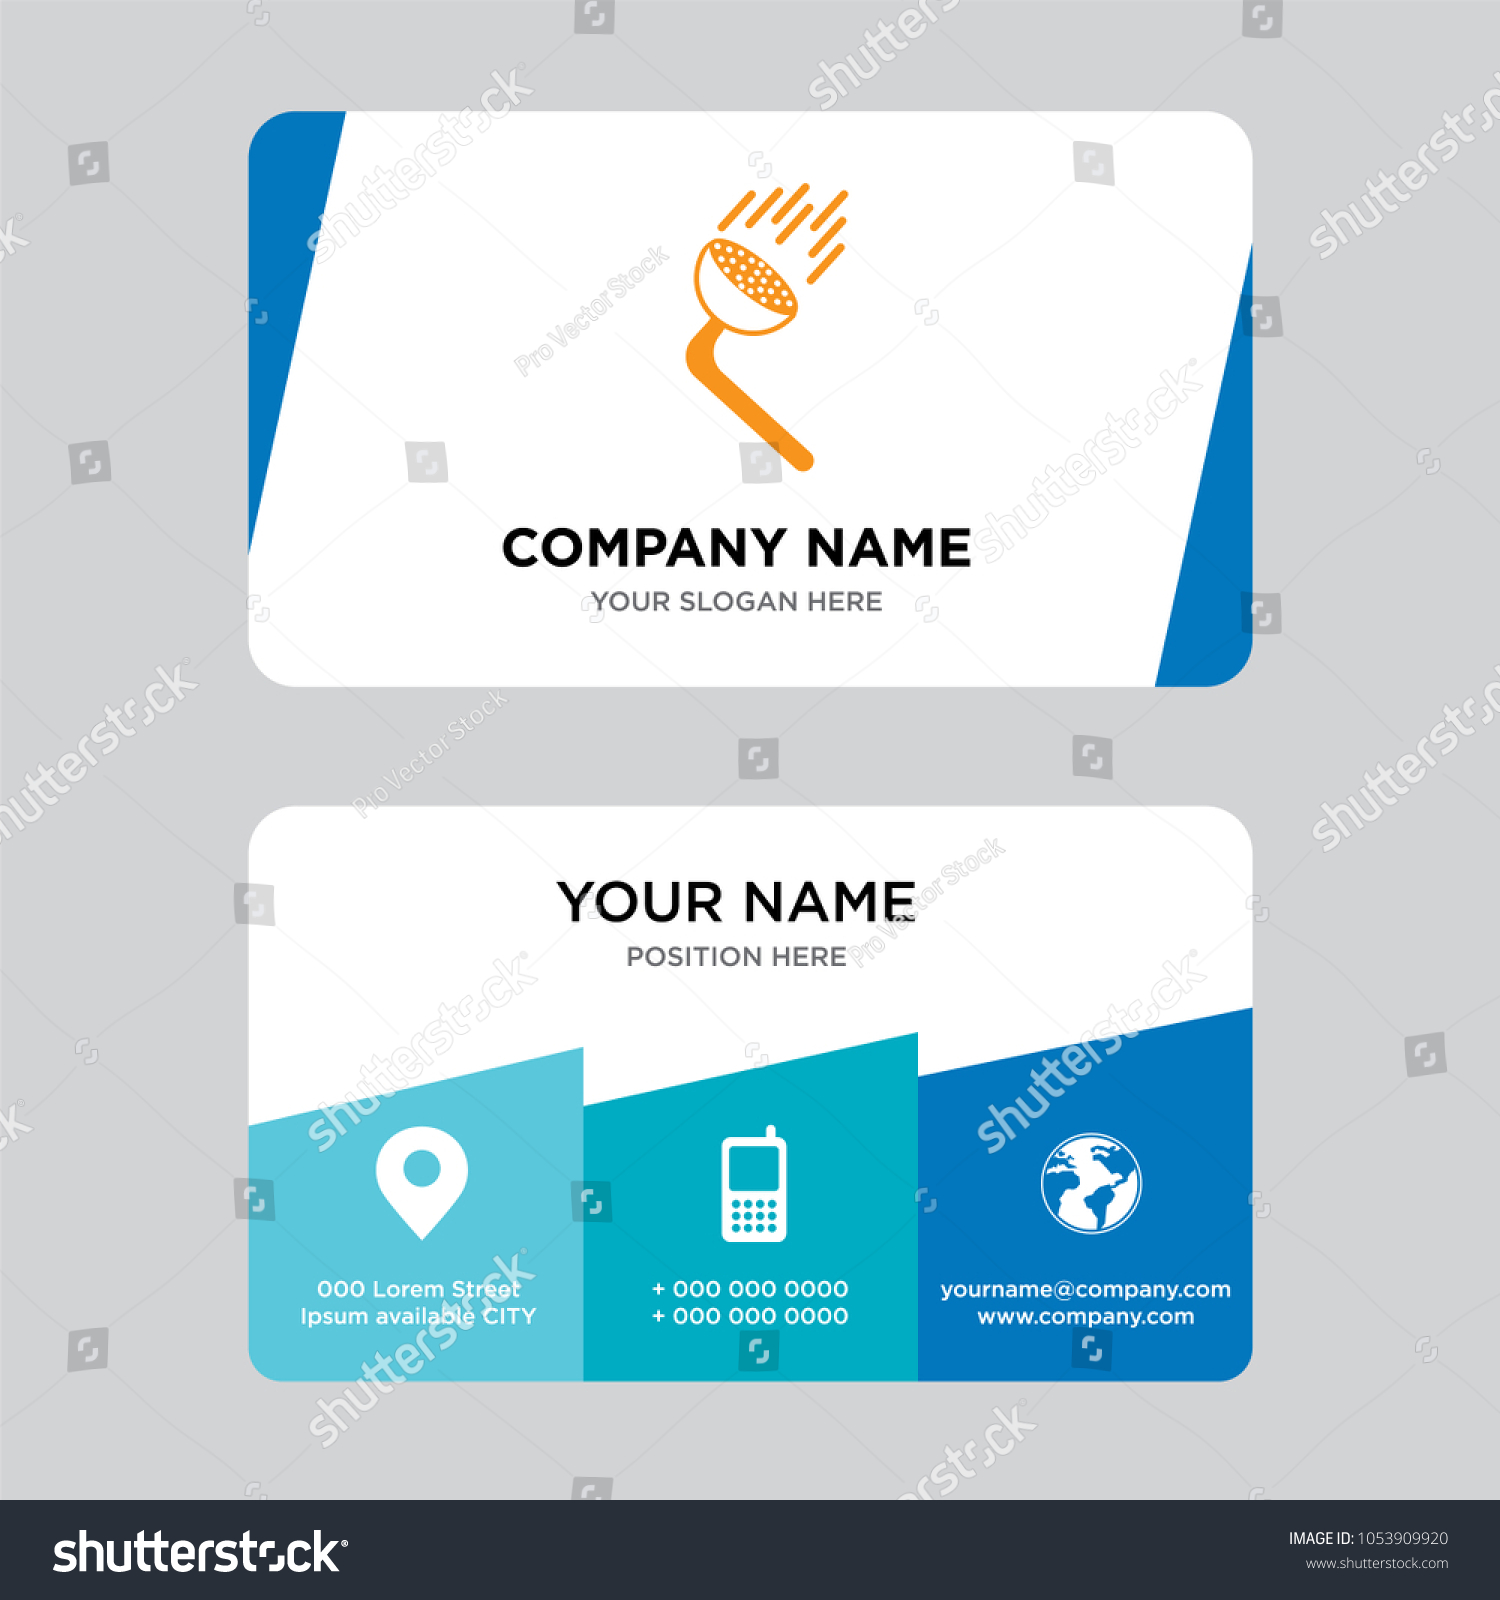 Pressure Washing Business Card Design Template Stock Vector HD ...